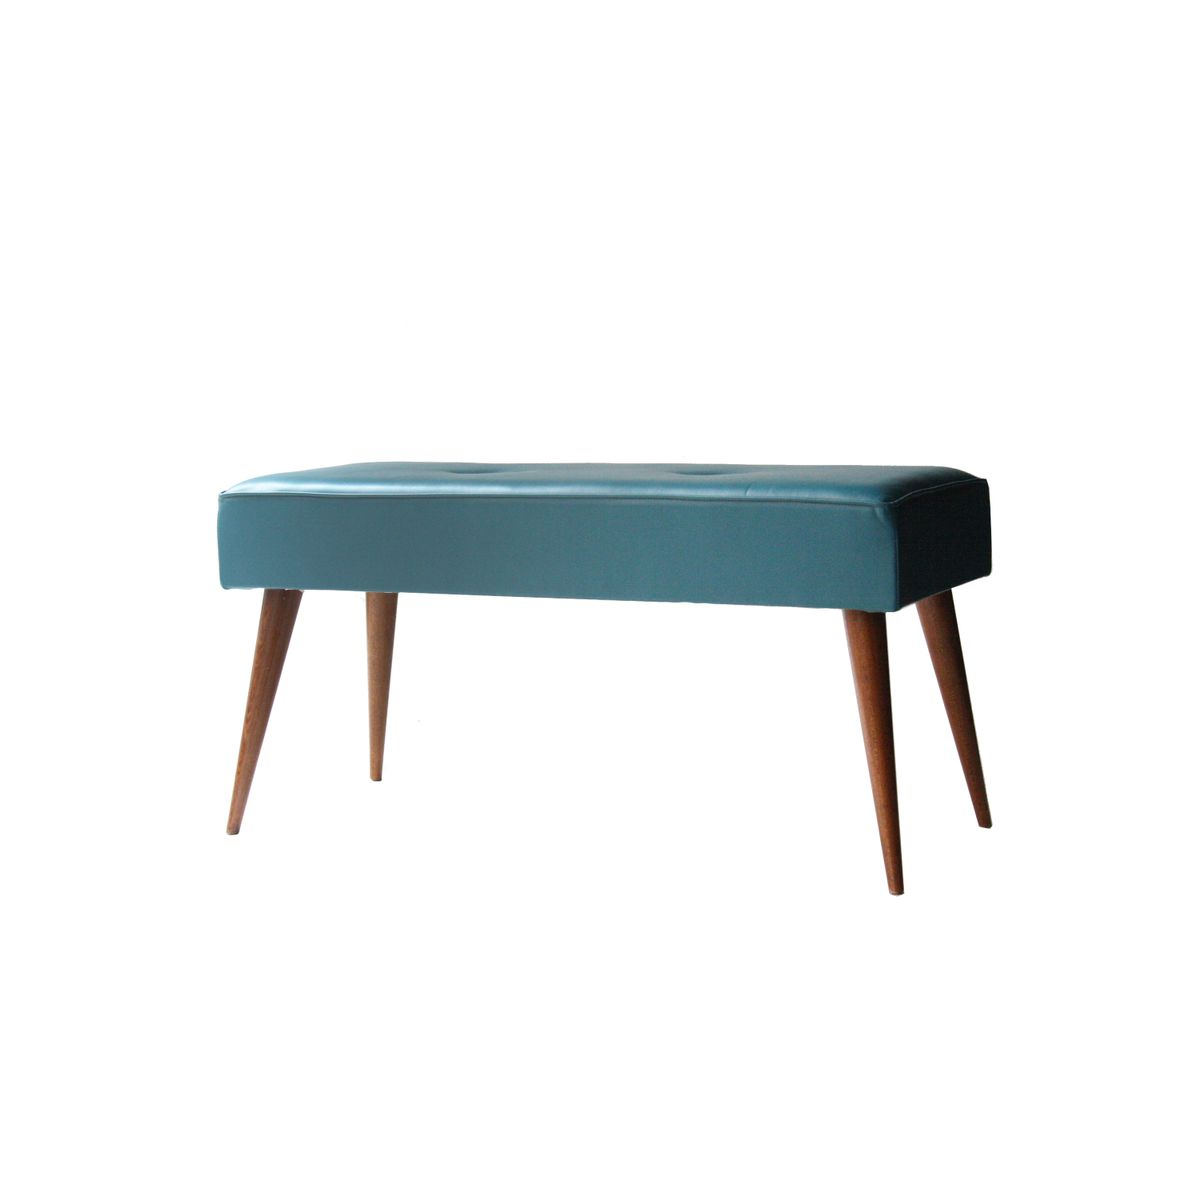 Vinyl Benches 1960s Set Of 2 For Sale At Pamono